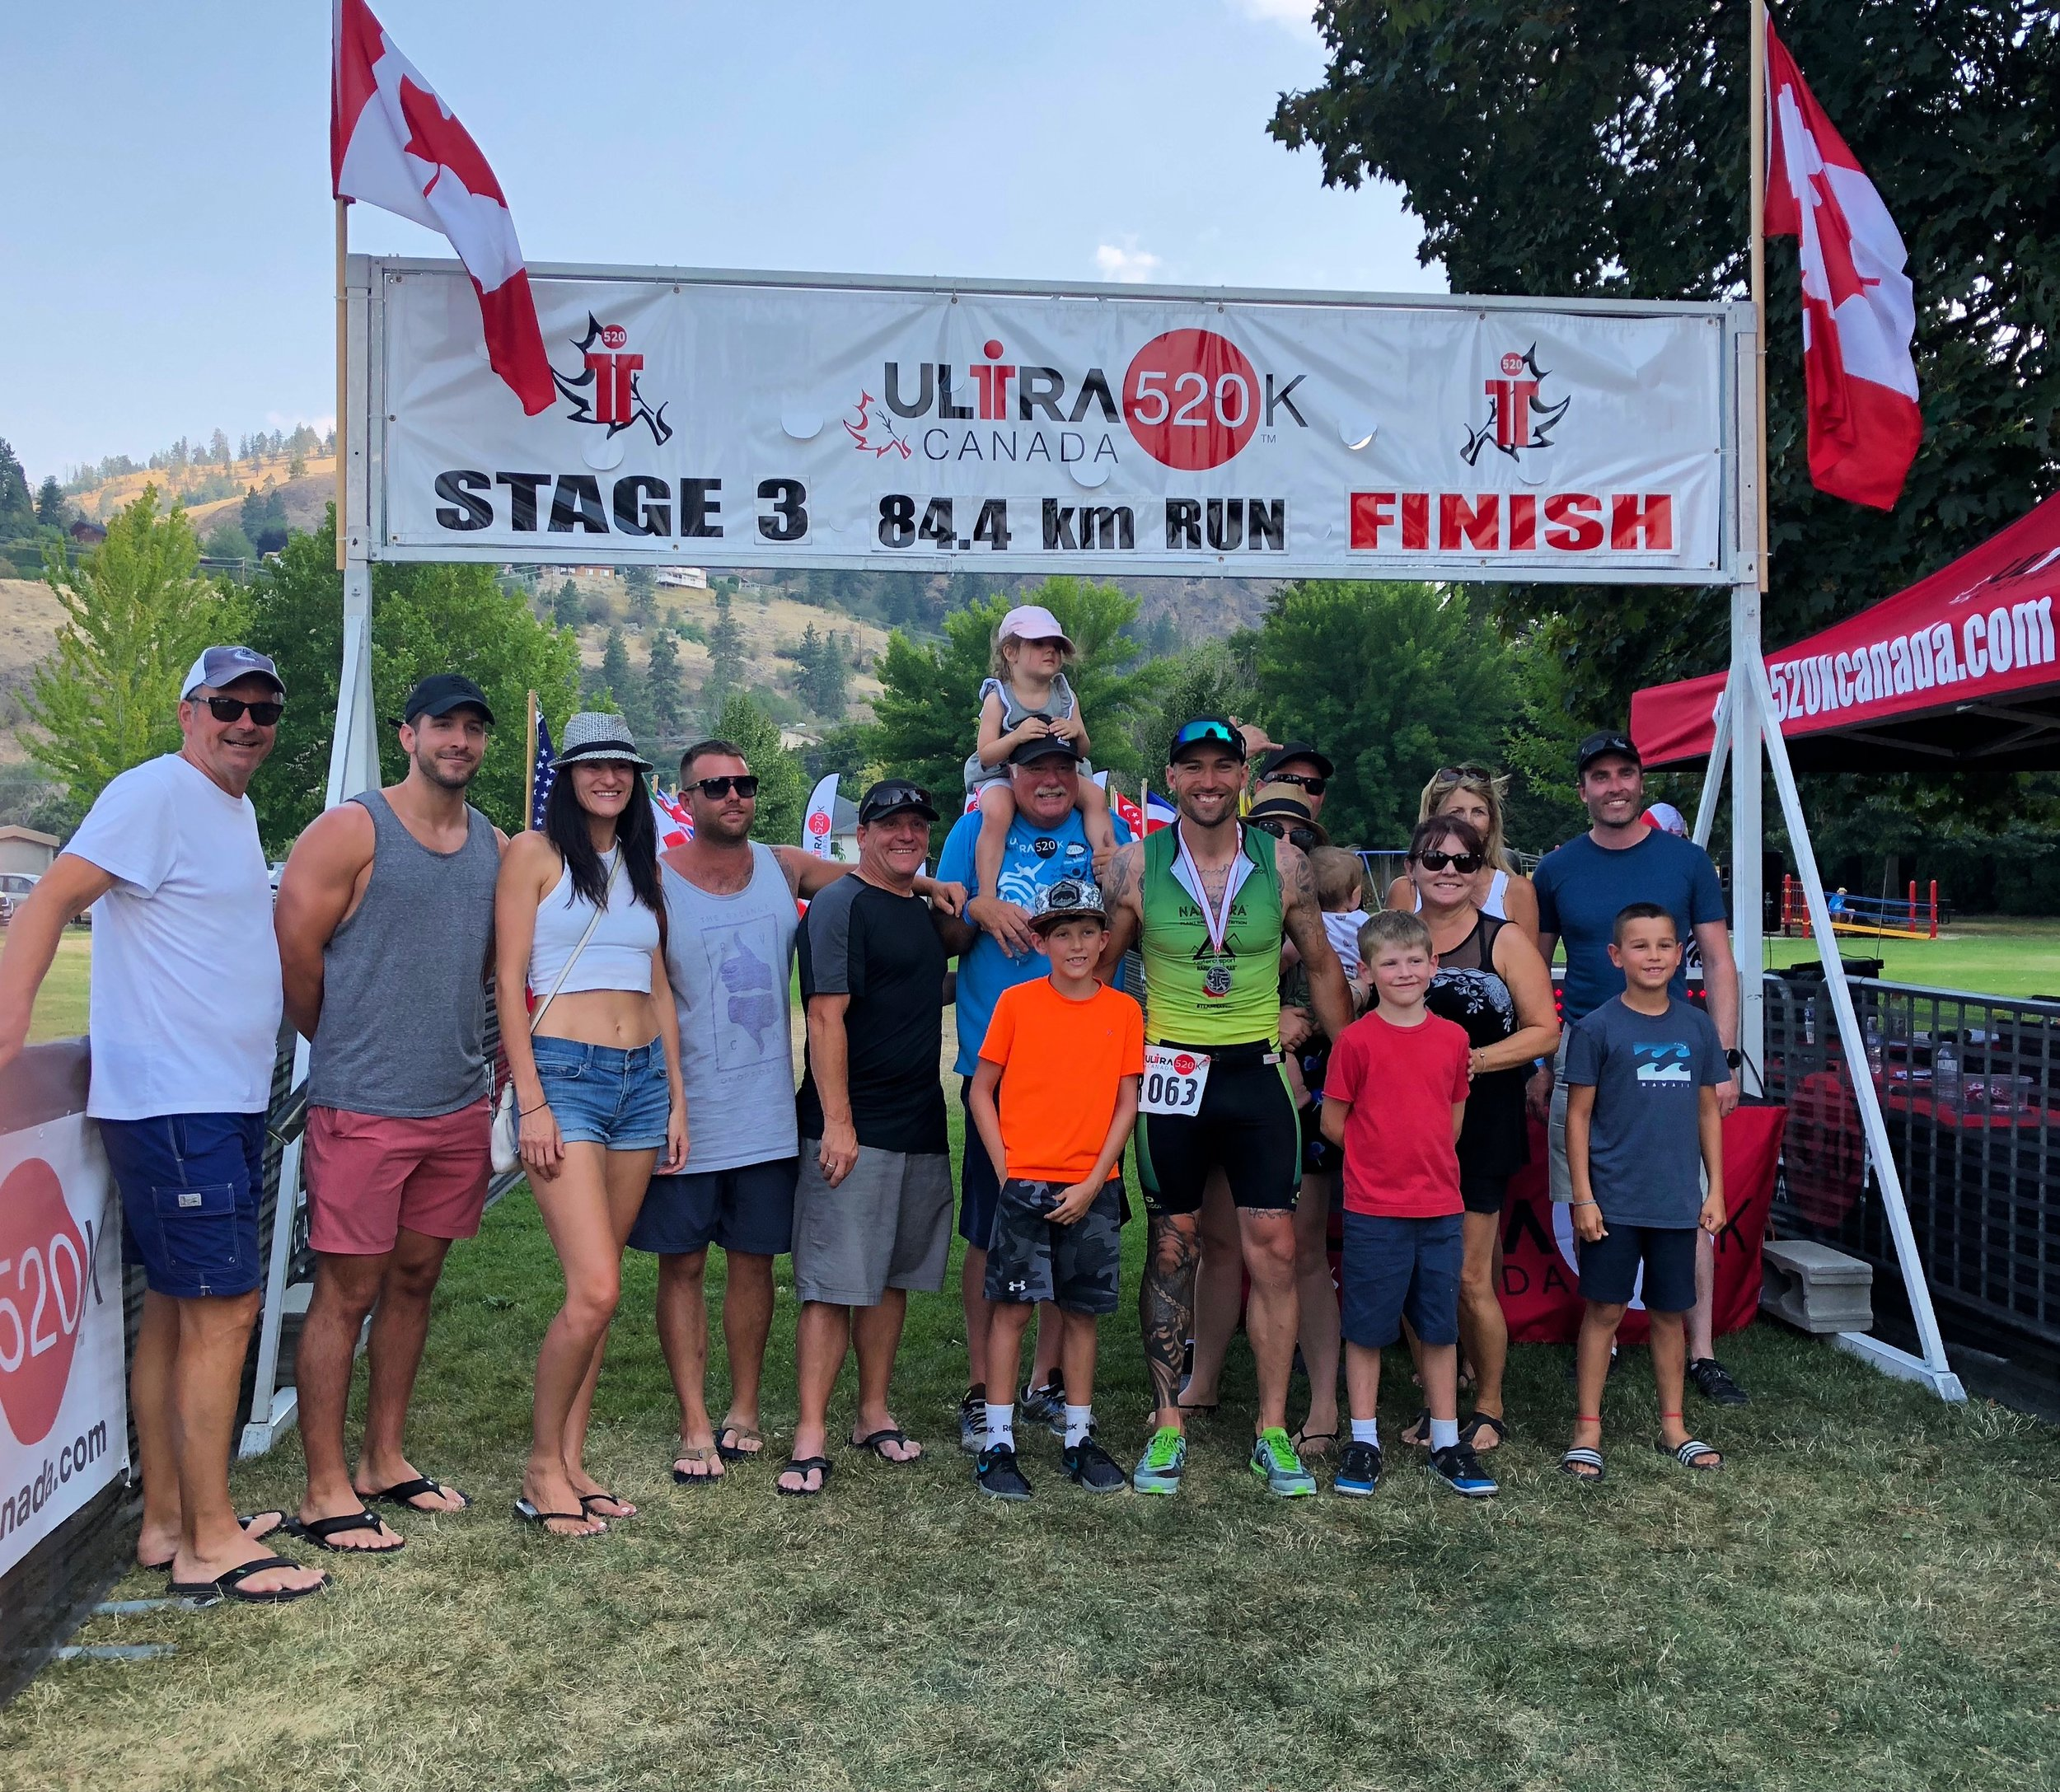 Finish line of stage 3 with my family, friends, support crew and sponsors from Natera Sport.